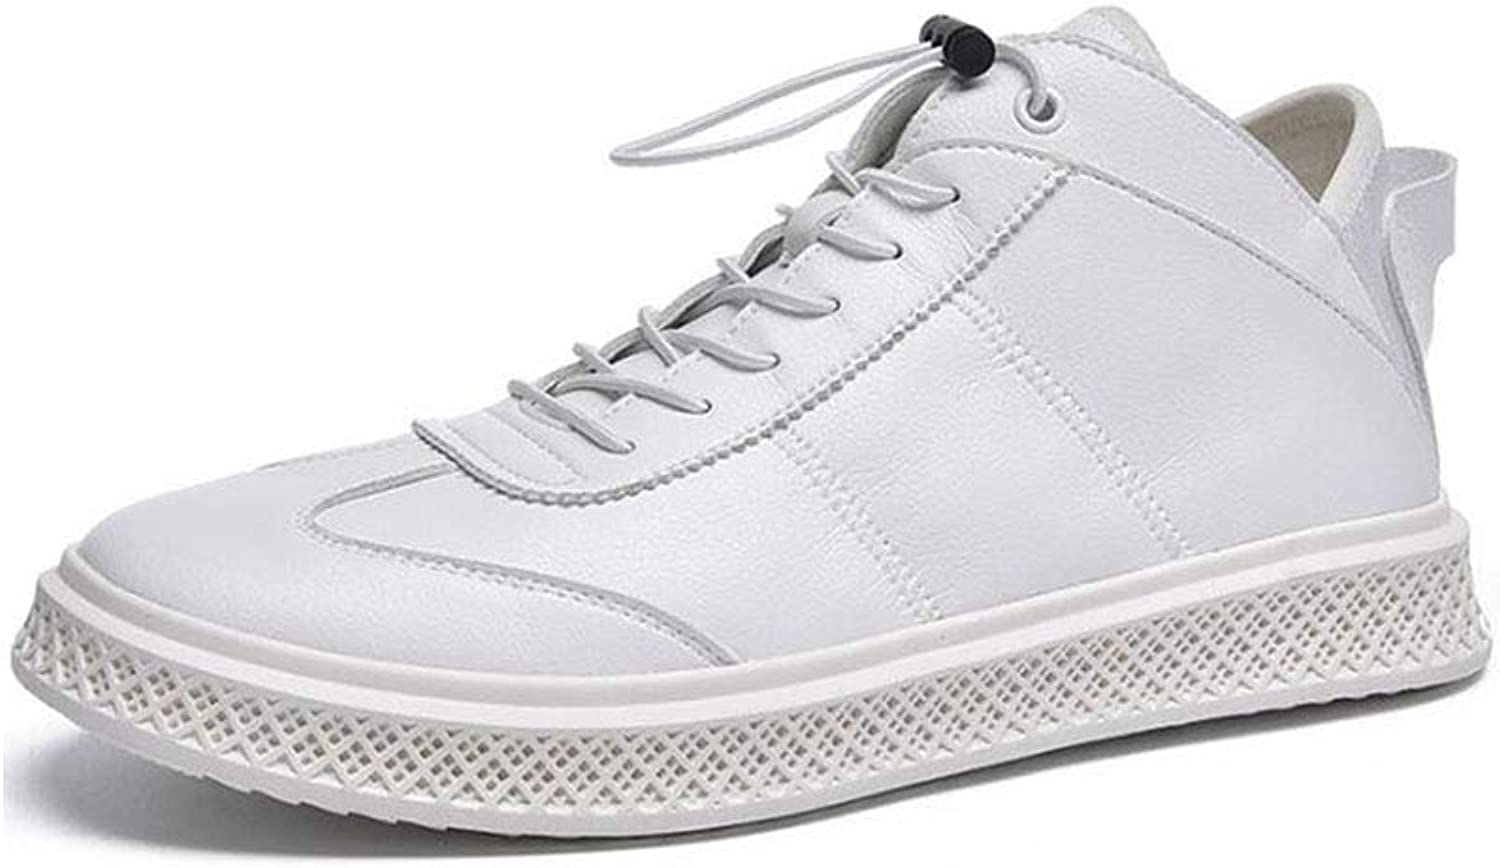 ECSD Men's Leather High Top Fashion Sneaker Spring And Winter Casual shoes Board shoes (color   White, Size   EU43 UK9 CN44)